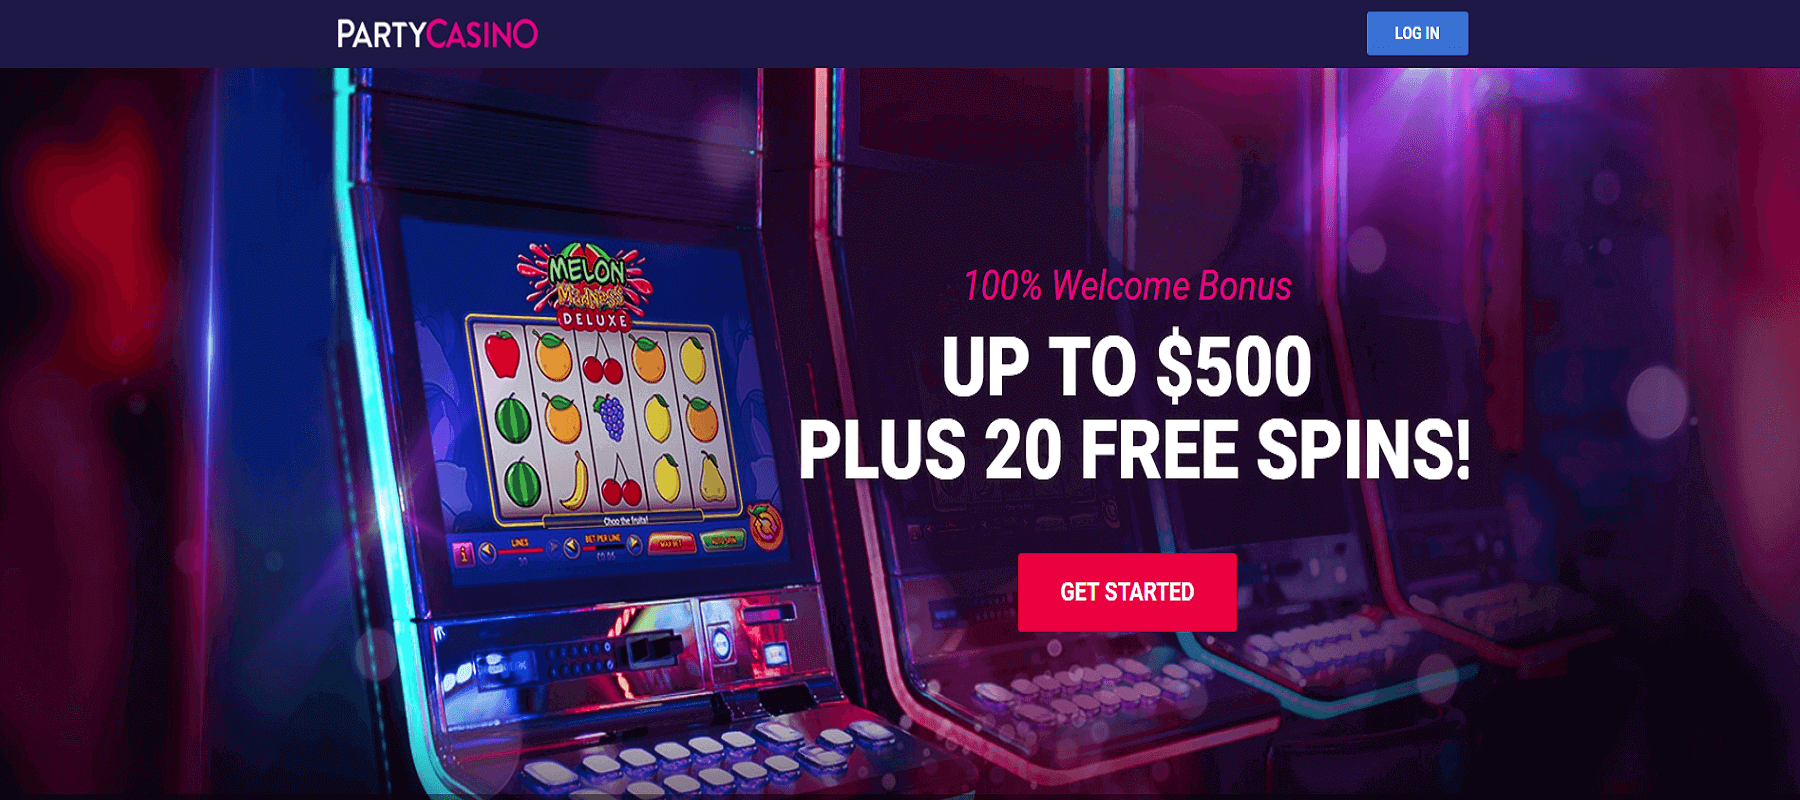 Party Casino Screenshot with 100% Welcome Bonus up to $500 Plus 20 Free Spins